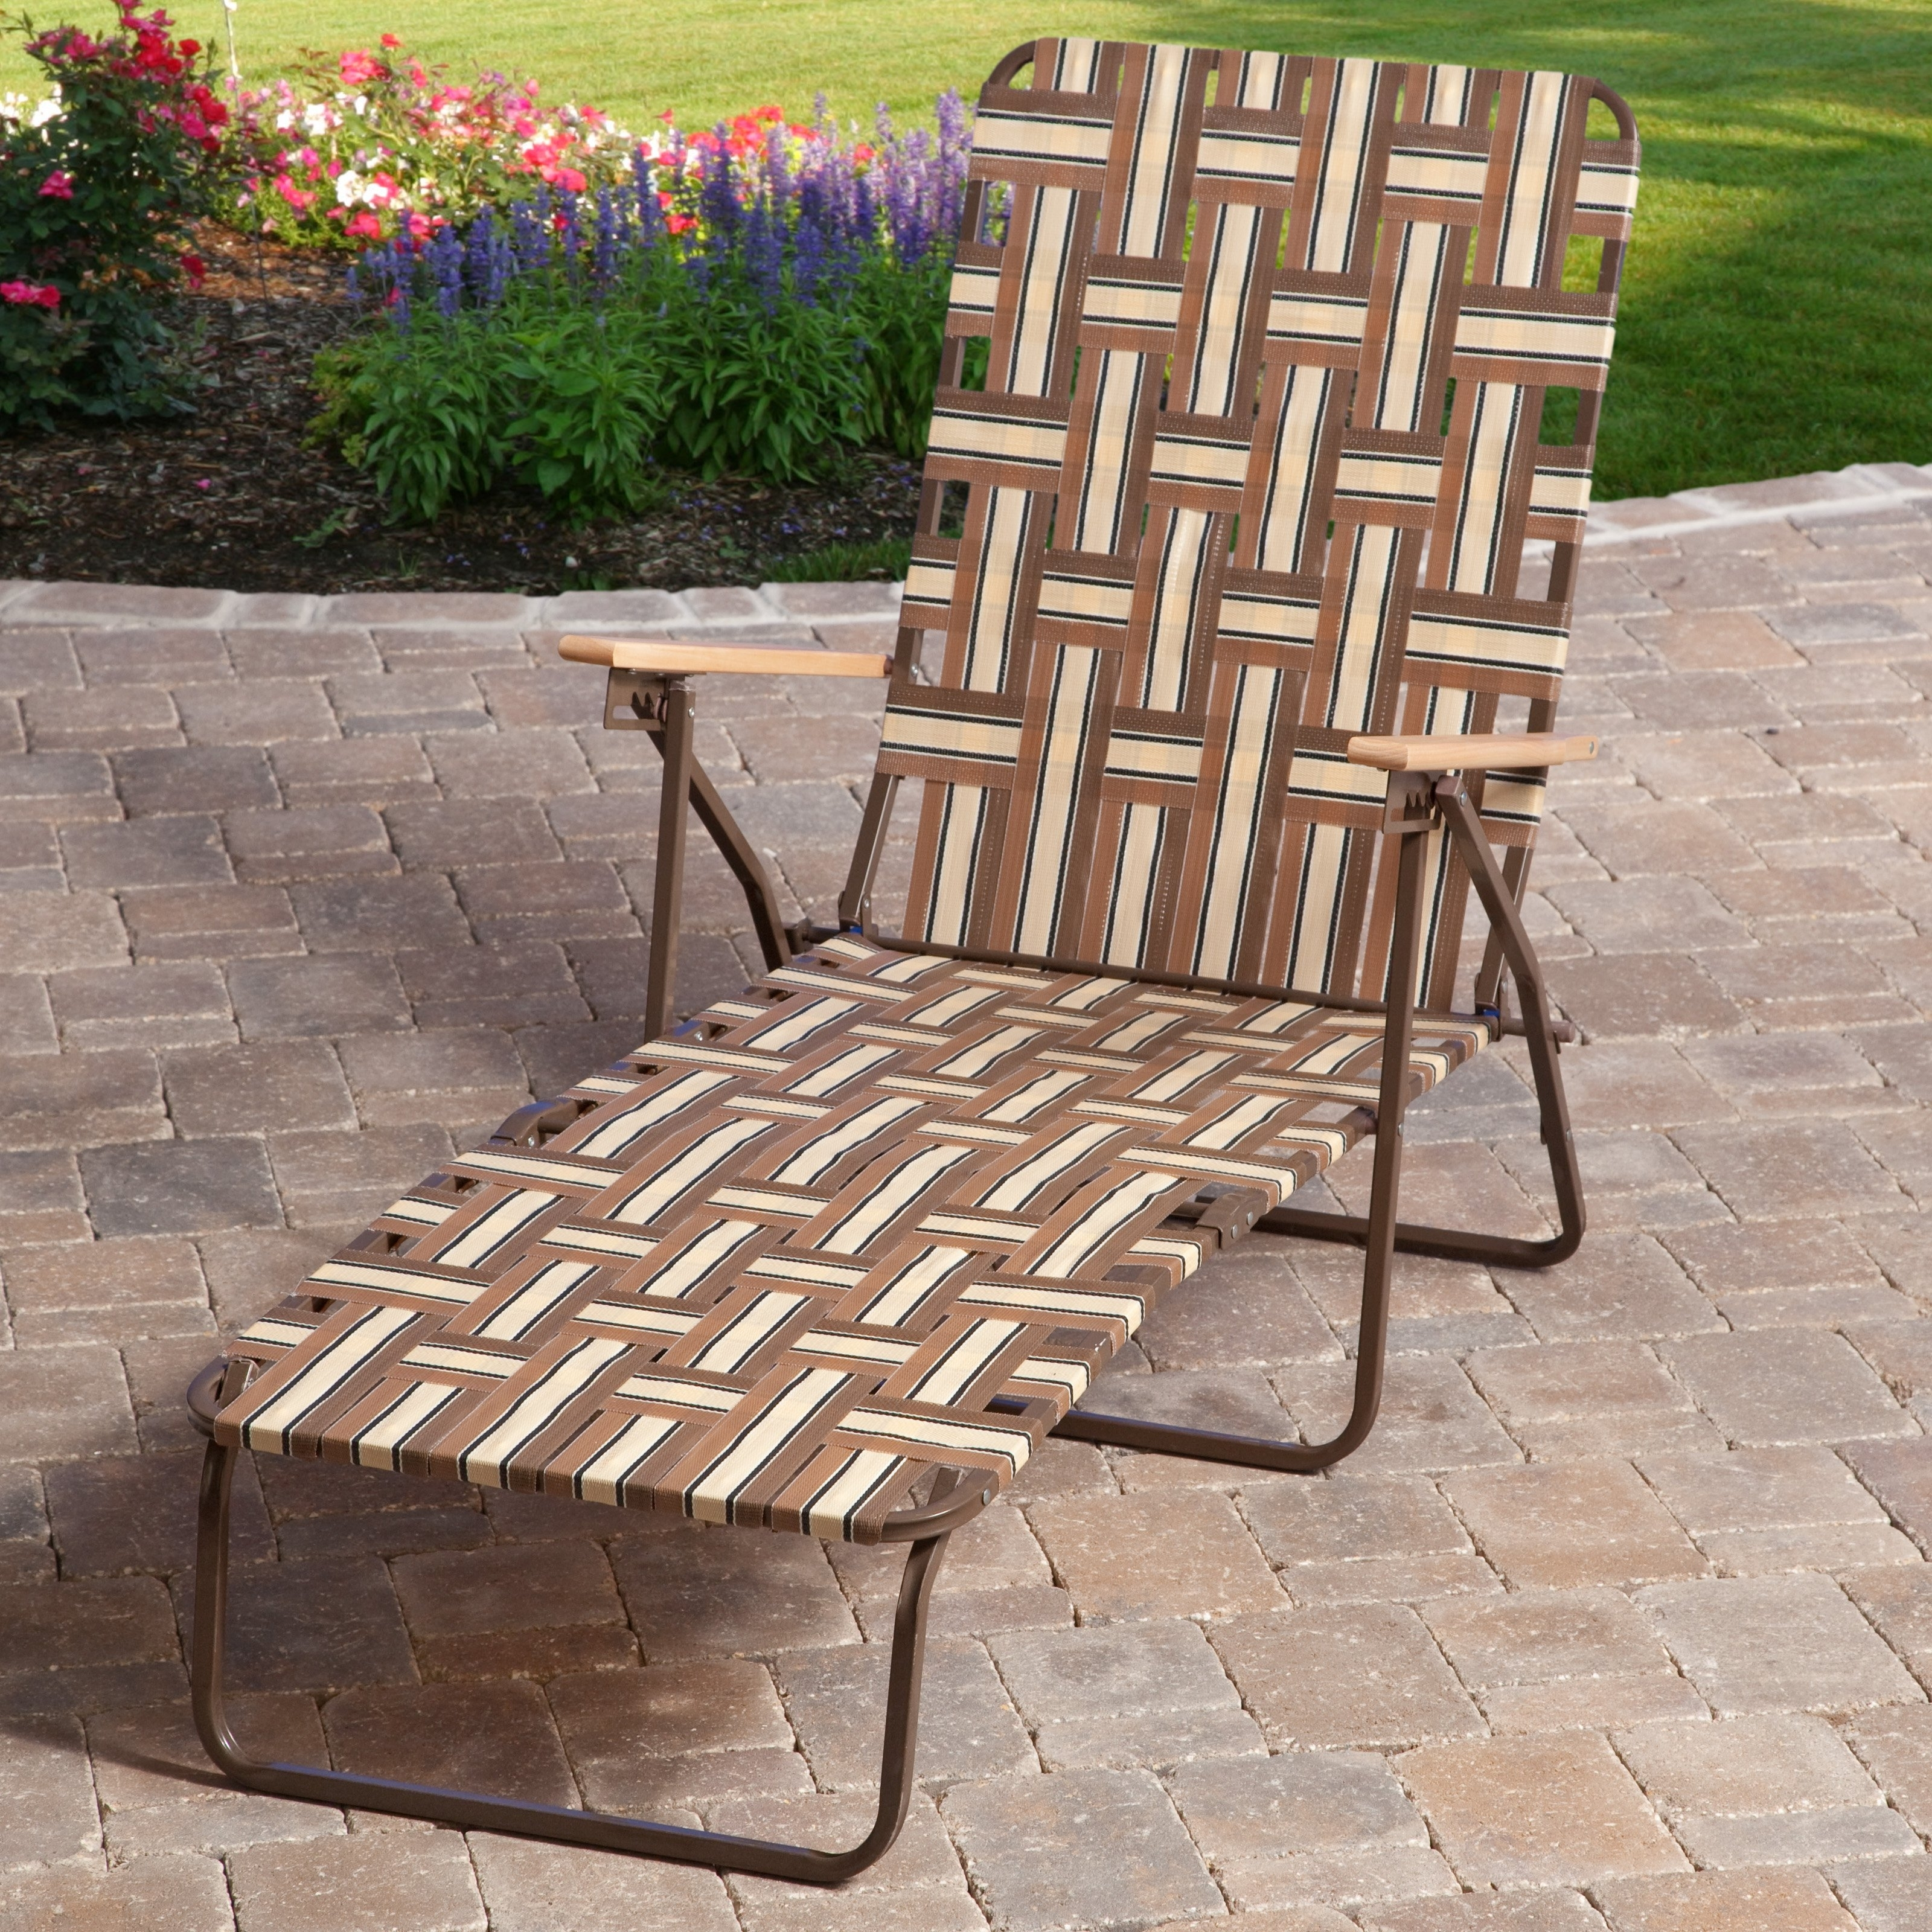 Rio Deluxe Folding Web Chaise Lounge – Walmart For Popular Walmart Outdoor Chaise Lounges (View 5 of 15)